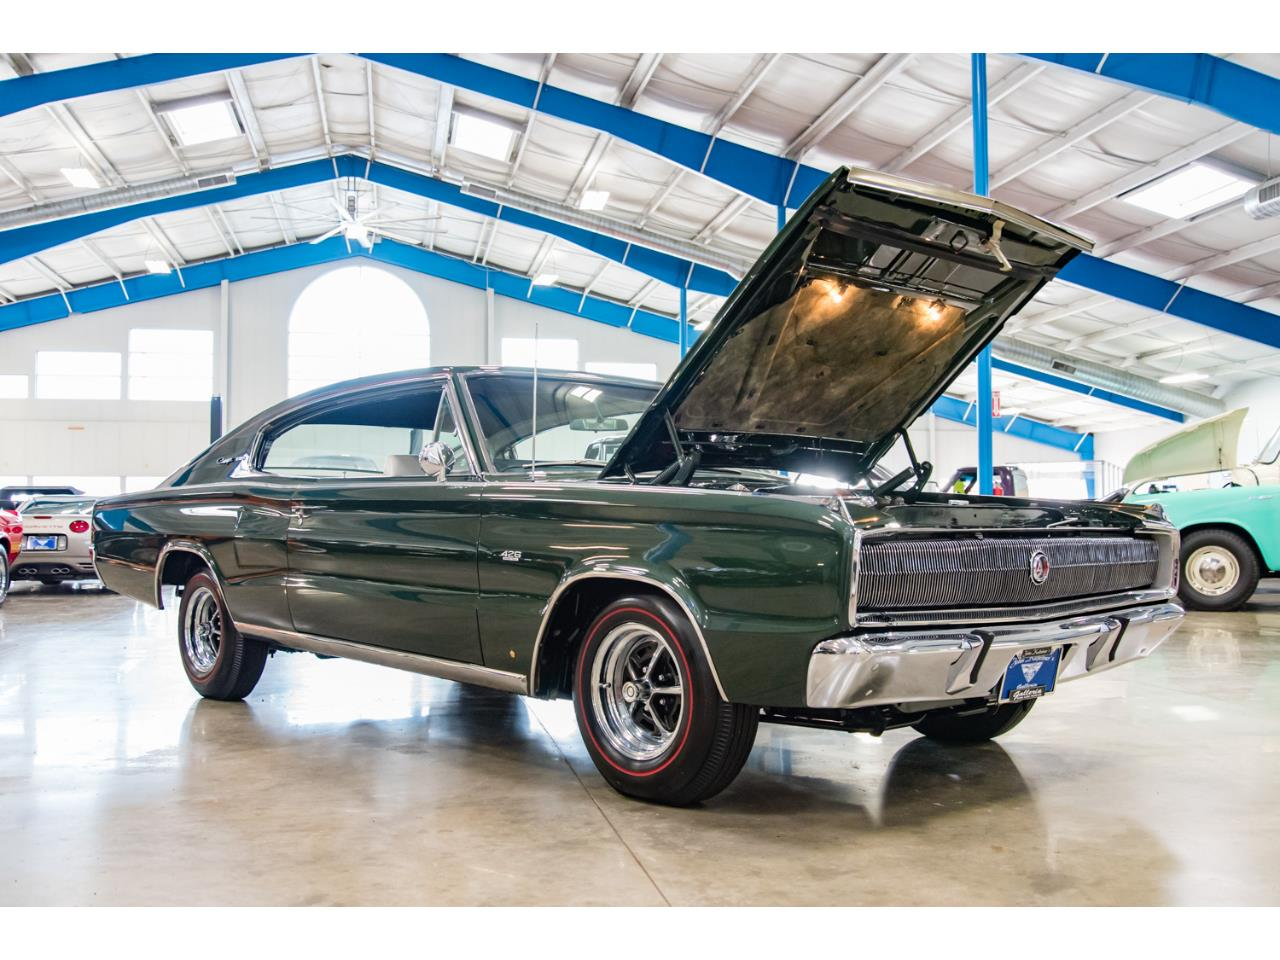 Large Picture of '67 Charger located in Salem Ohio - $175,000.00 - LKM1